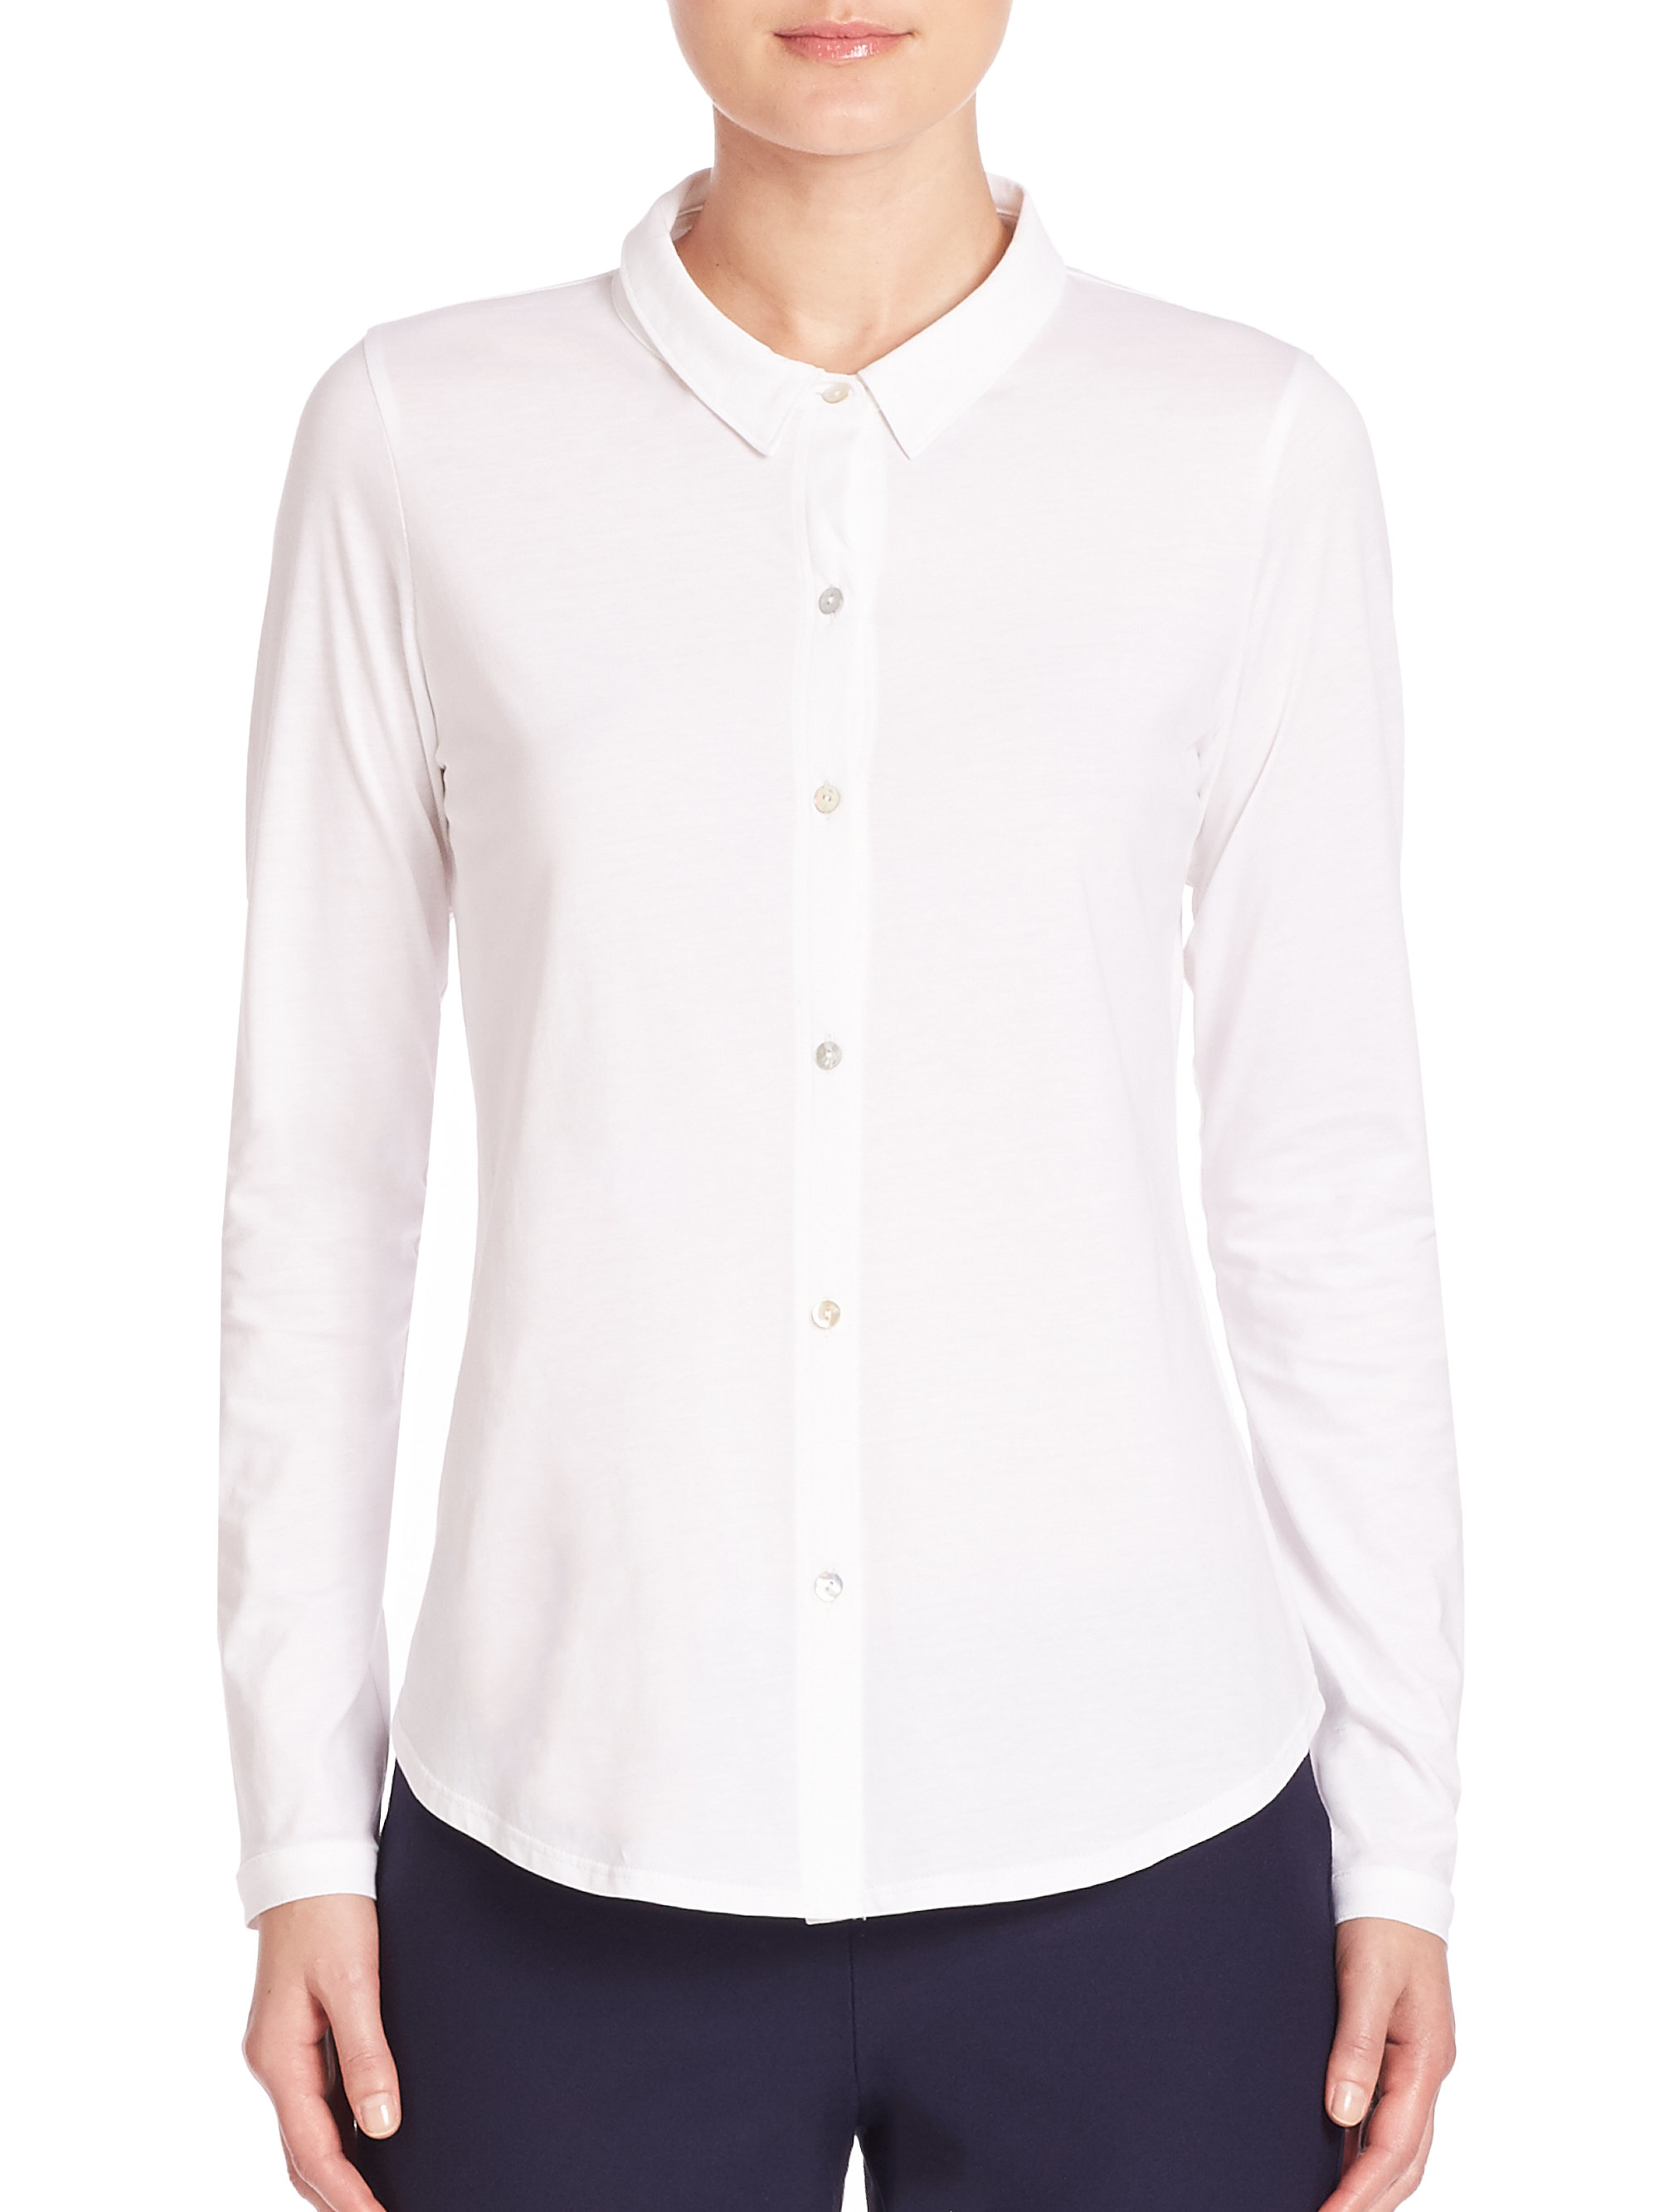 Eileen fisher organic cotton button front shirt in white for Organic cotton button down shirts